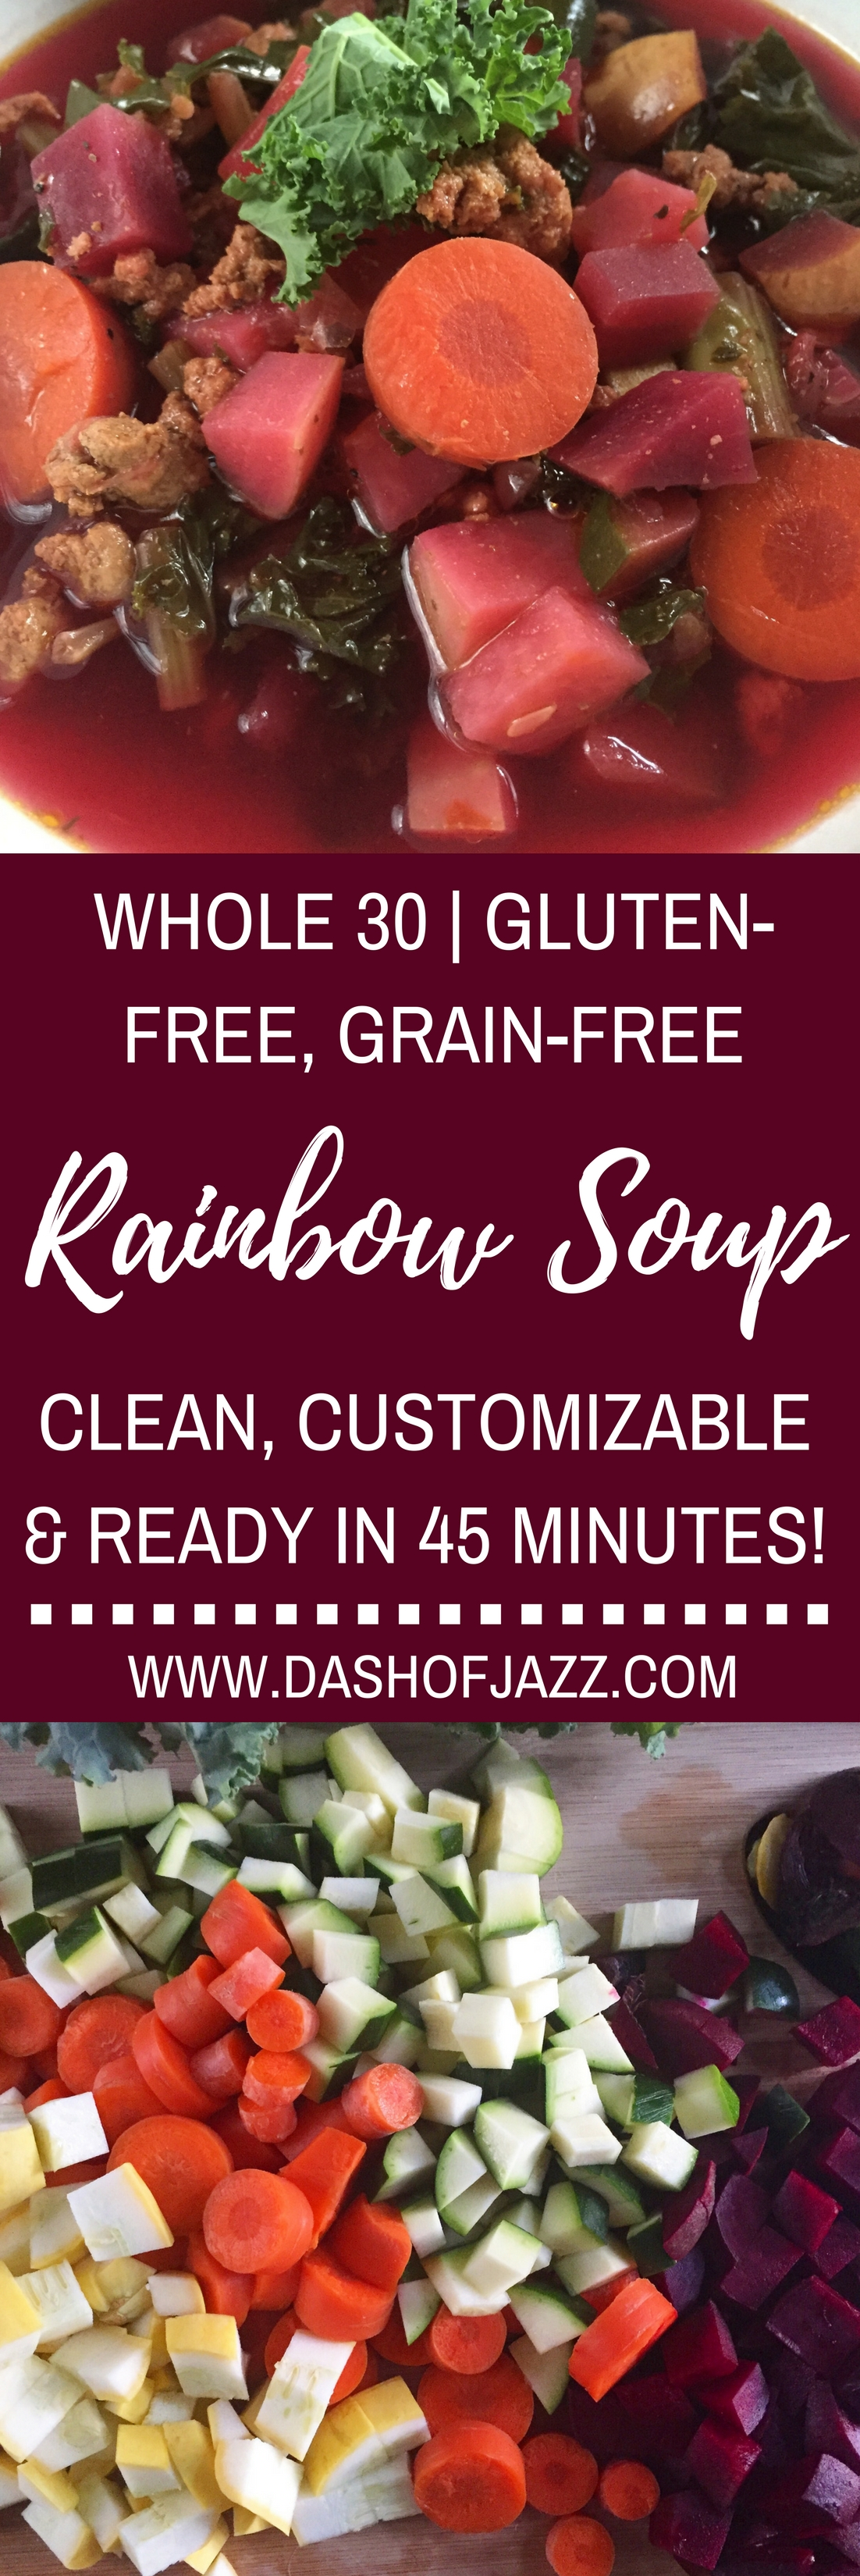 This rainbow soup is colorful, nutrient-packed, and brimming with fresh veggies, protein, and flavor in about 45 minutes for the perfect good-for-you comfort meal! Whole30 compliant, gluten-free, grain-free and can easily be made vegetarian or vegan. Recipe by Dash of Jazz